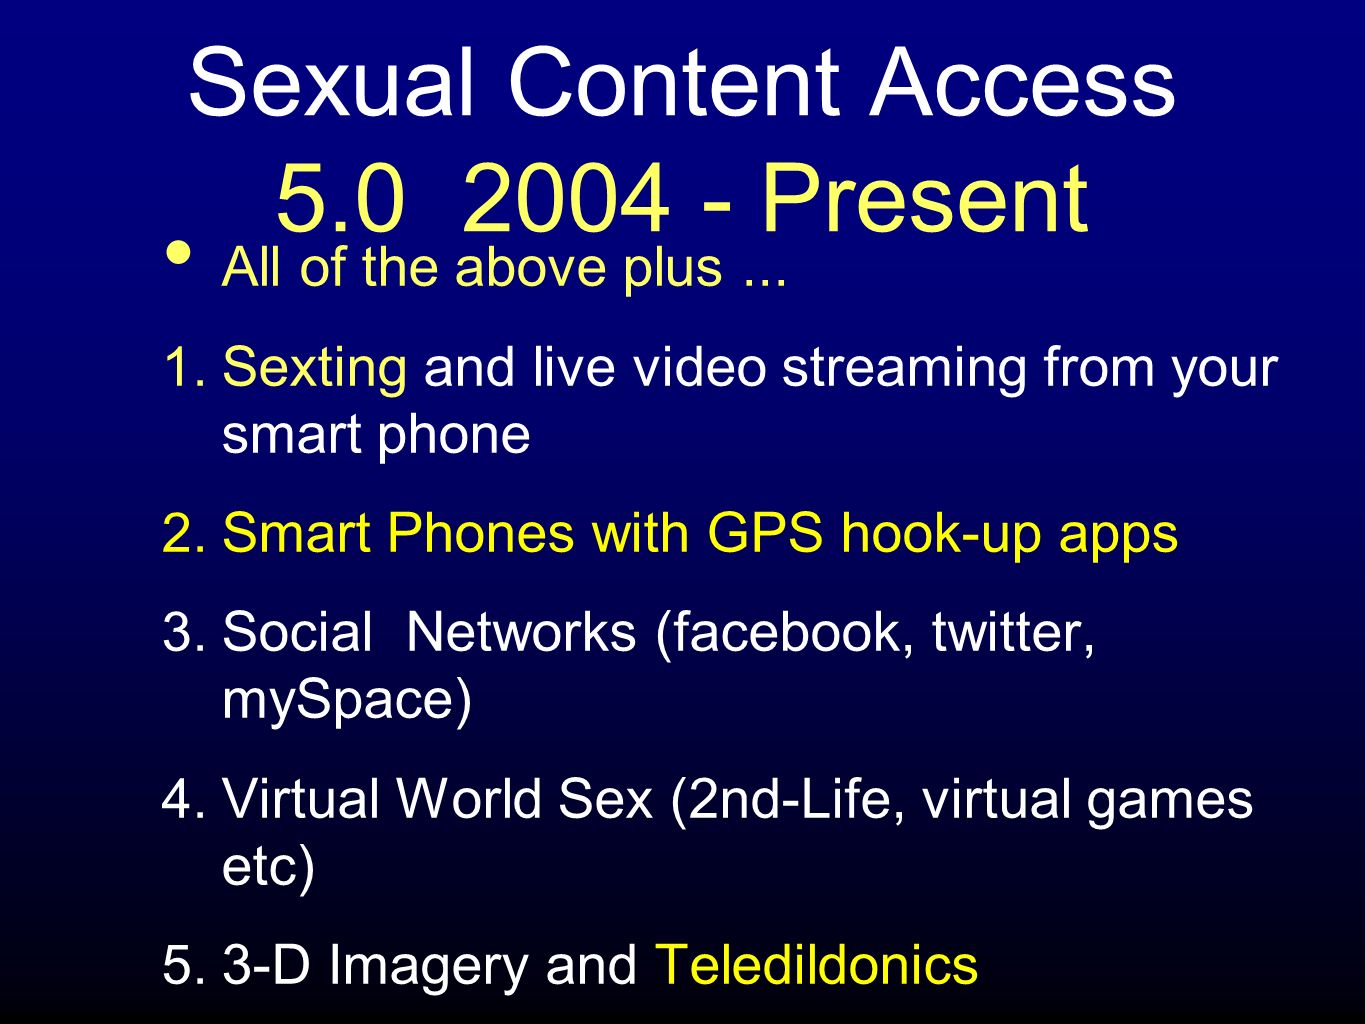 Sexual Content Access Present